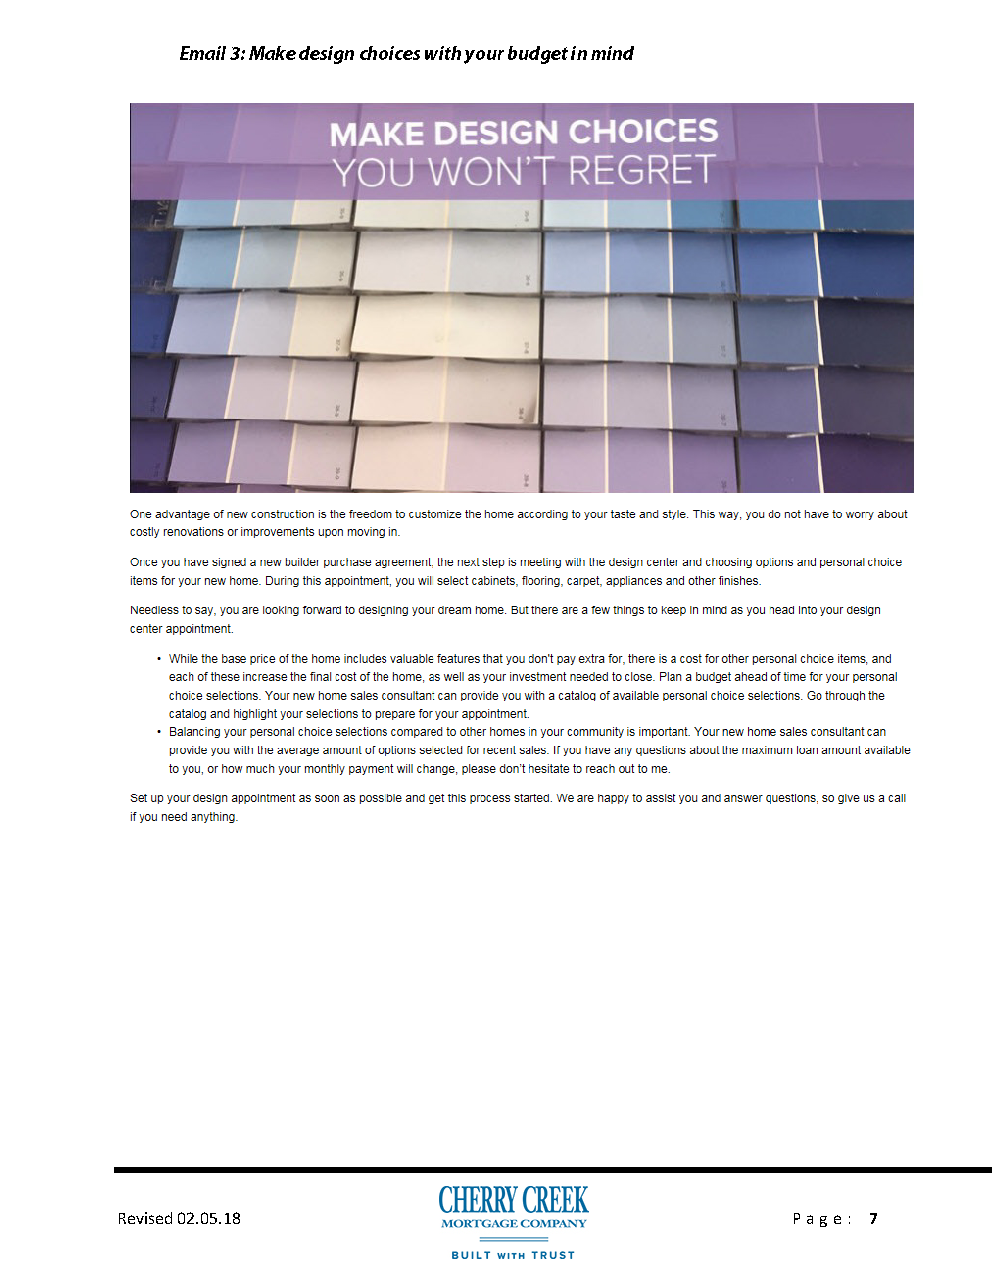 Jungo Email Drip Campaigns-New Construction_Swn4C0z_Page_07.png